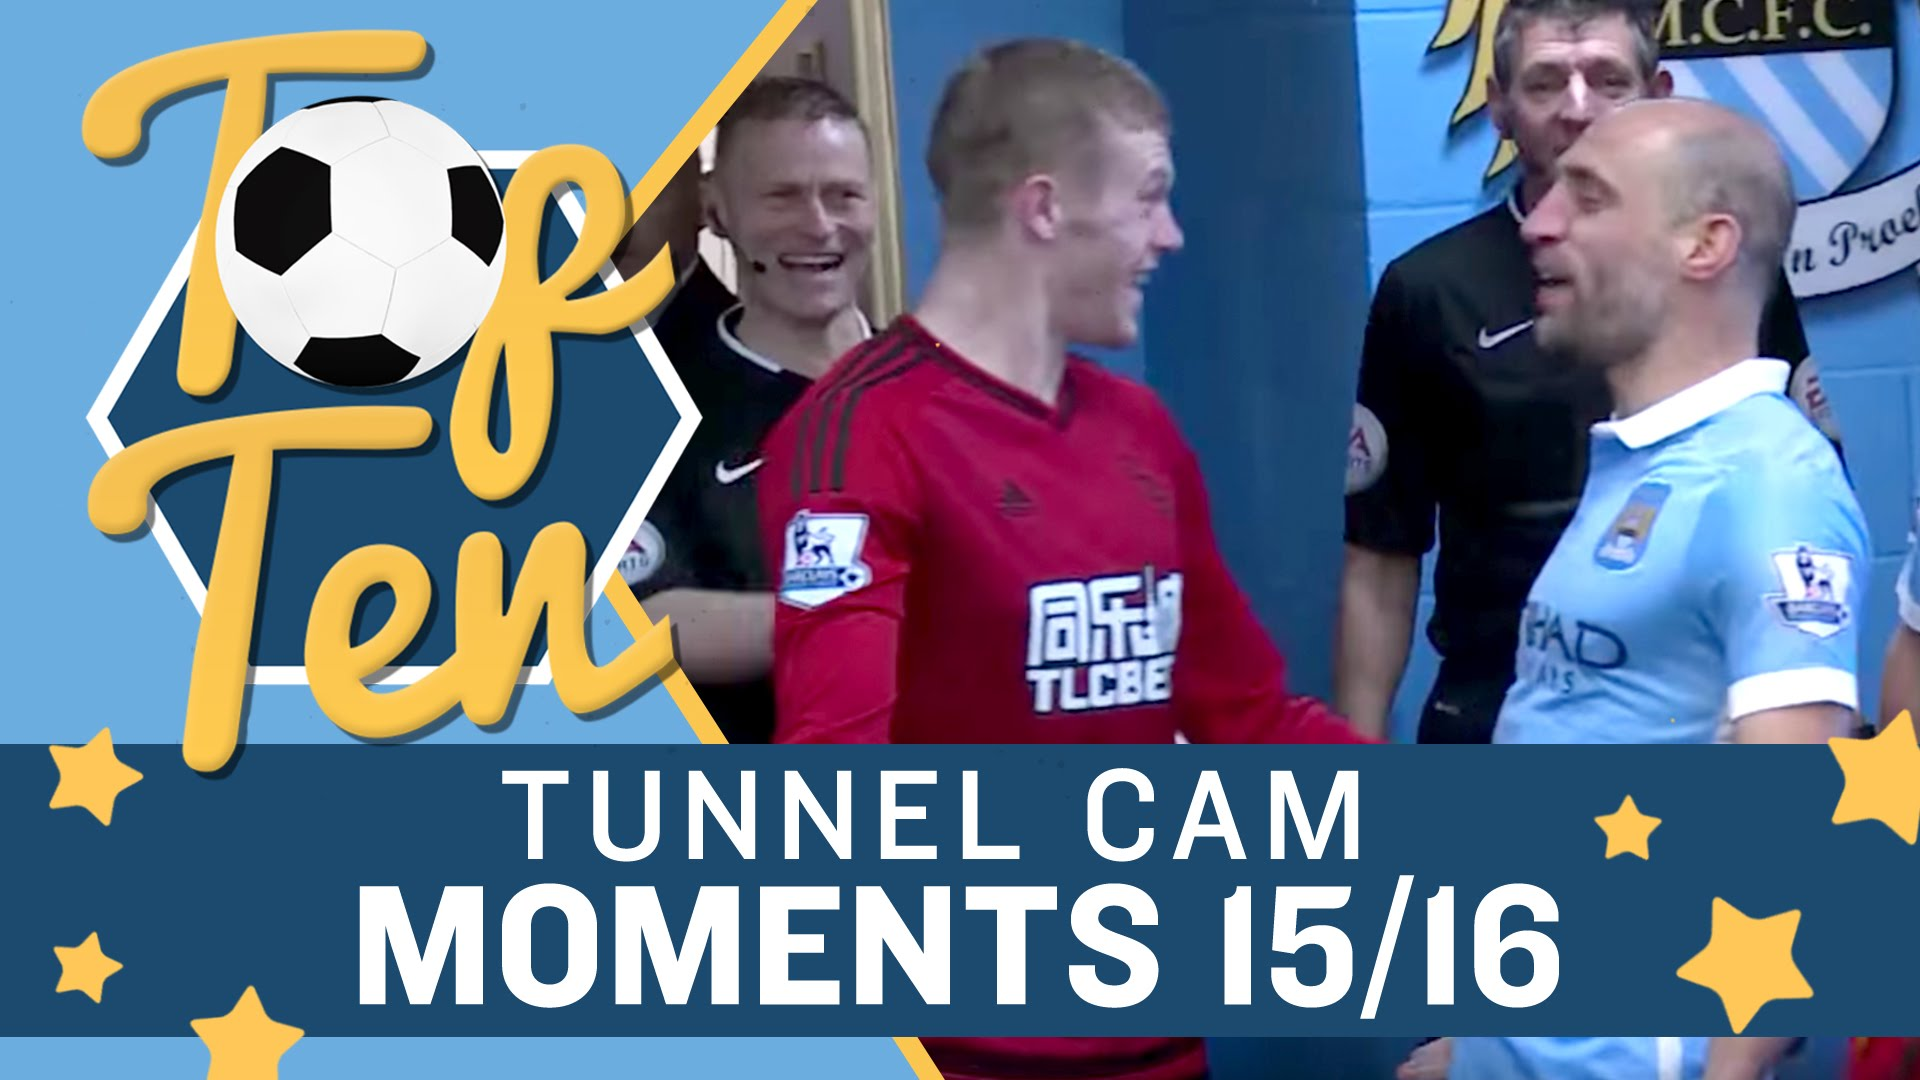 Manchester City Top 10 Tunnel Cam Moments Of 2015/16 Season